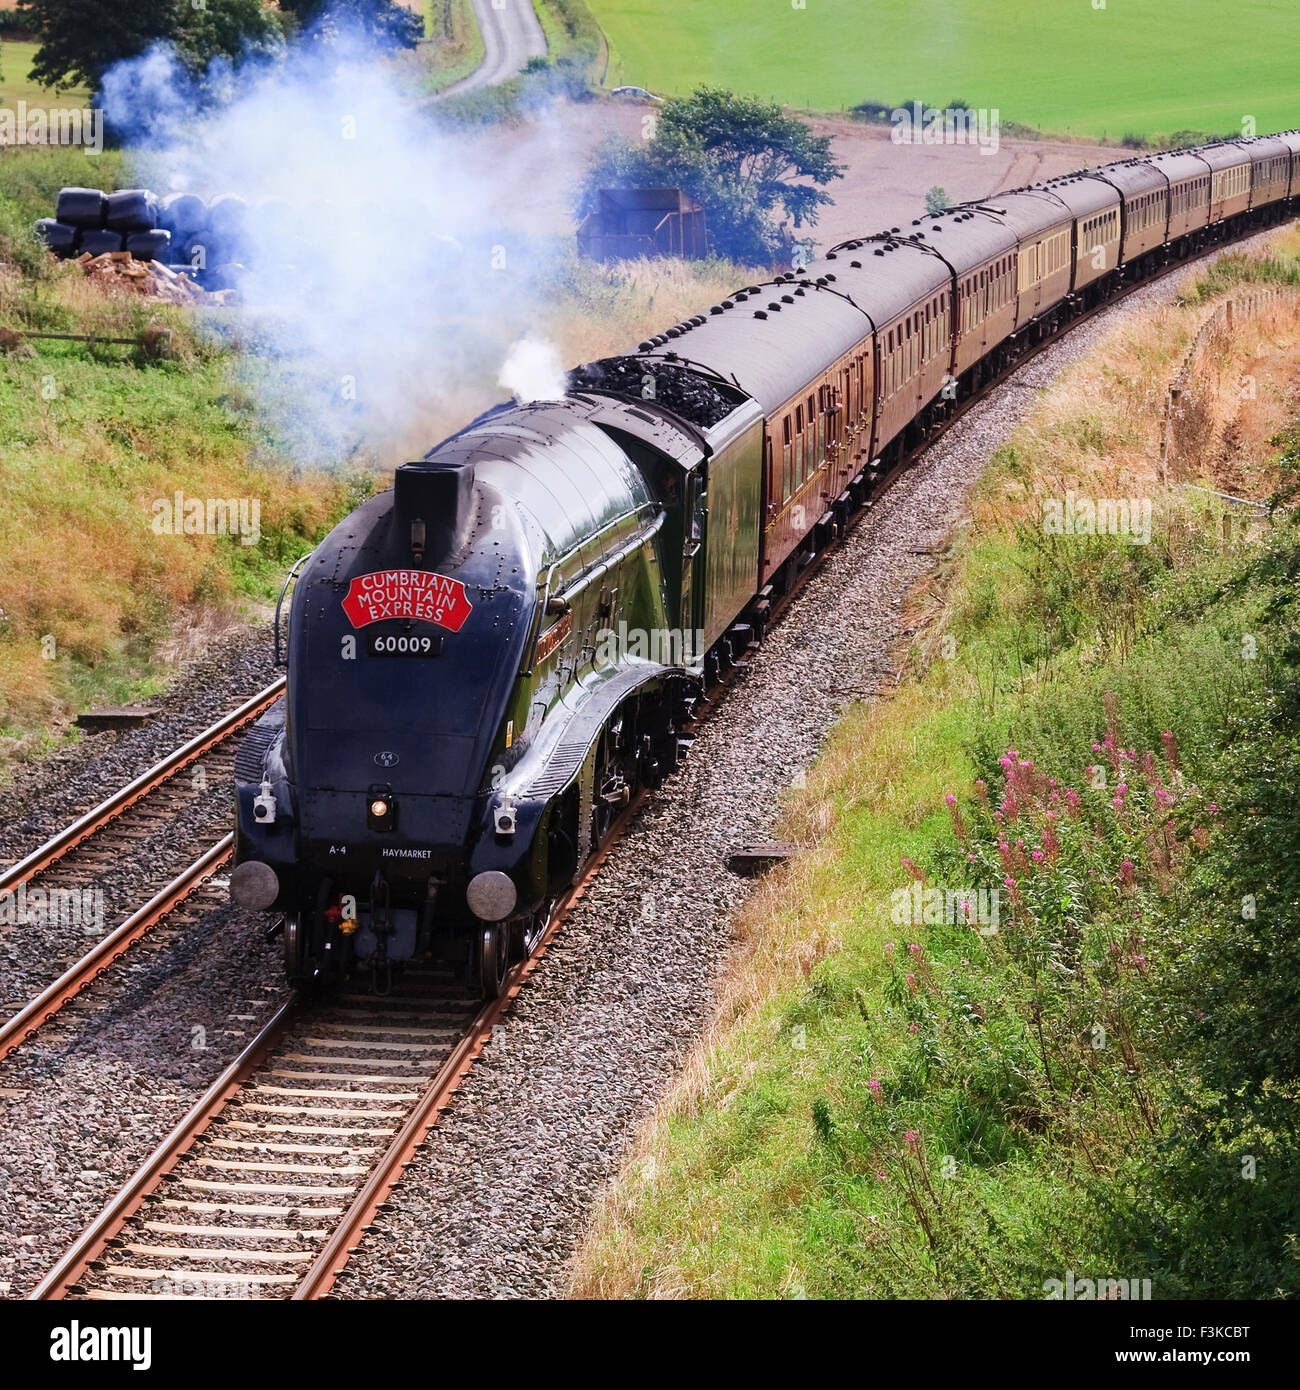 Preserved Sir Nigel Gresley steam locomotive Union of South Africa is pictured south of Langwathby, England.. - Stock Image